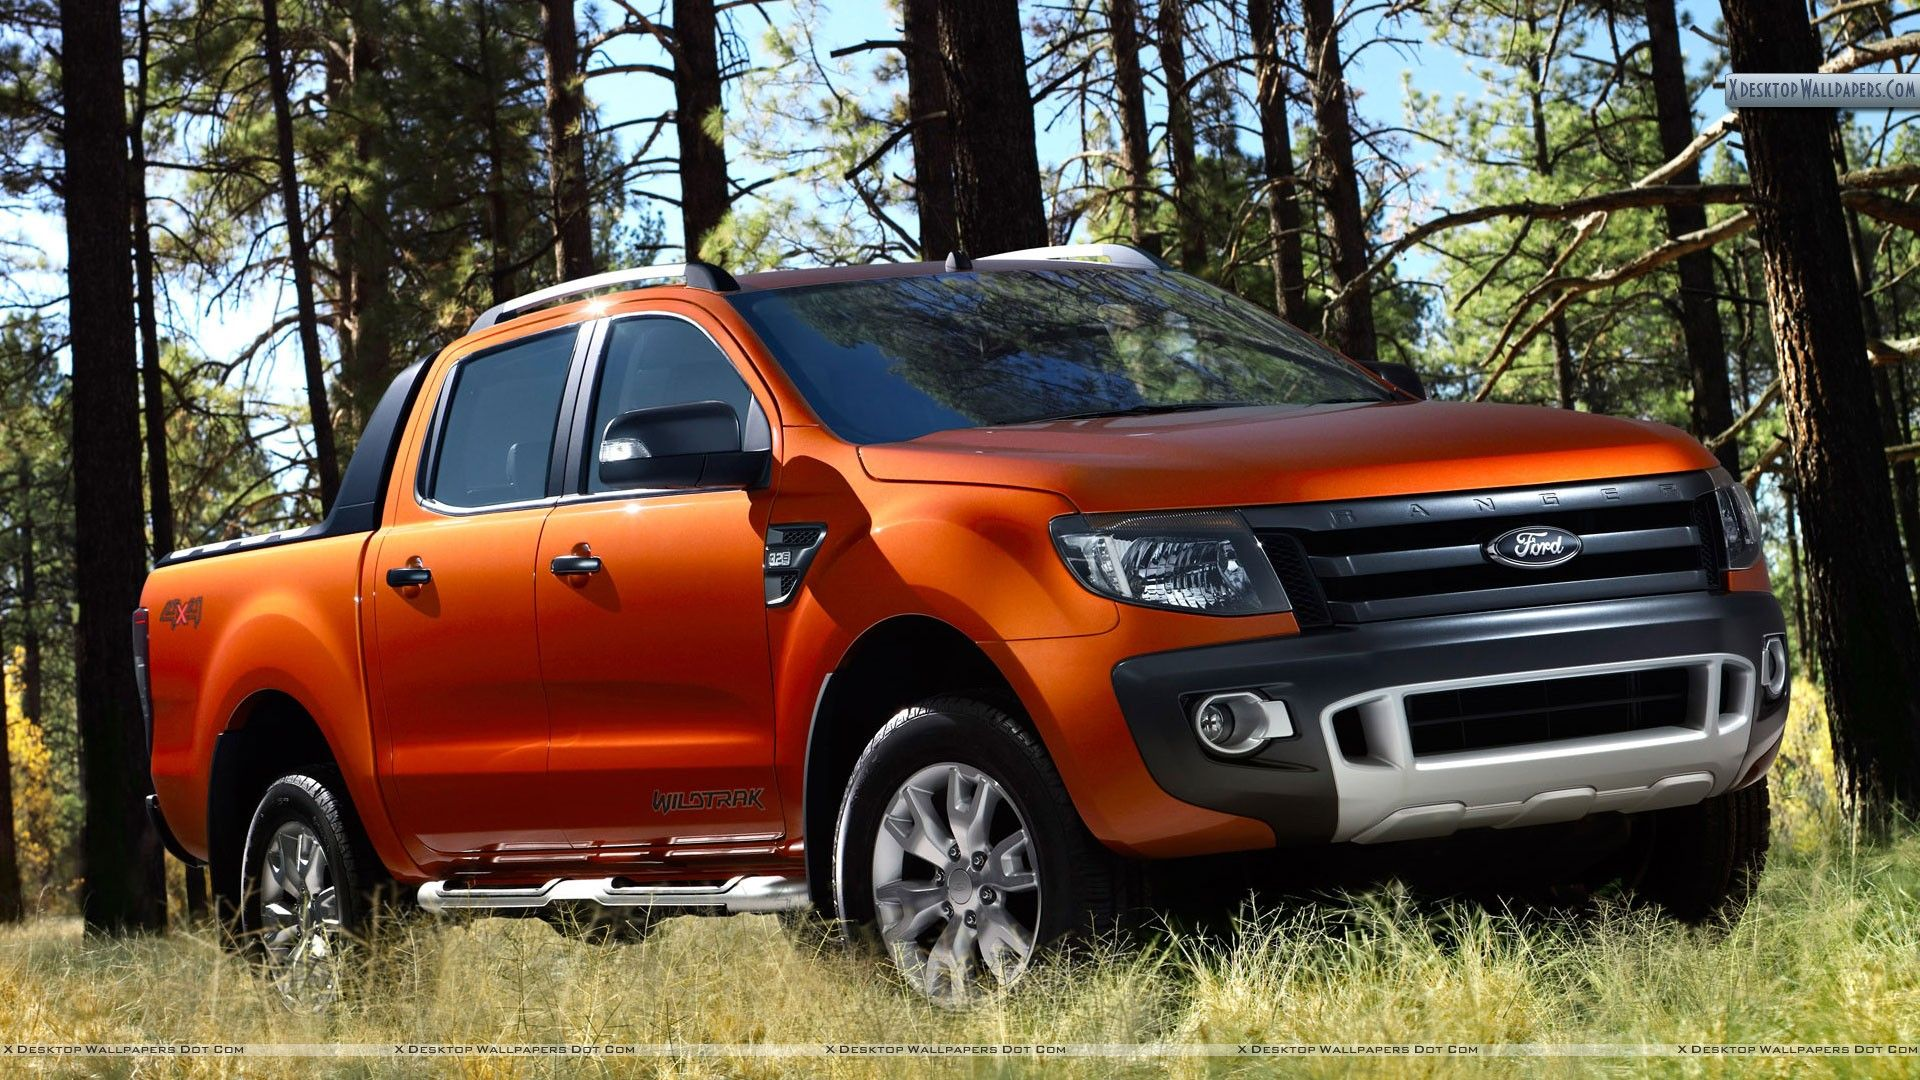 Ford Ranger Wallpapers, Photos Images in HD | Легенды